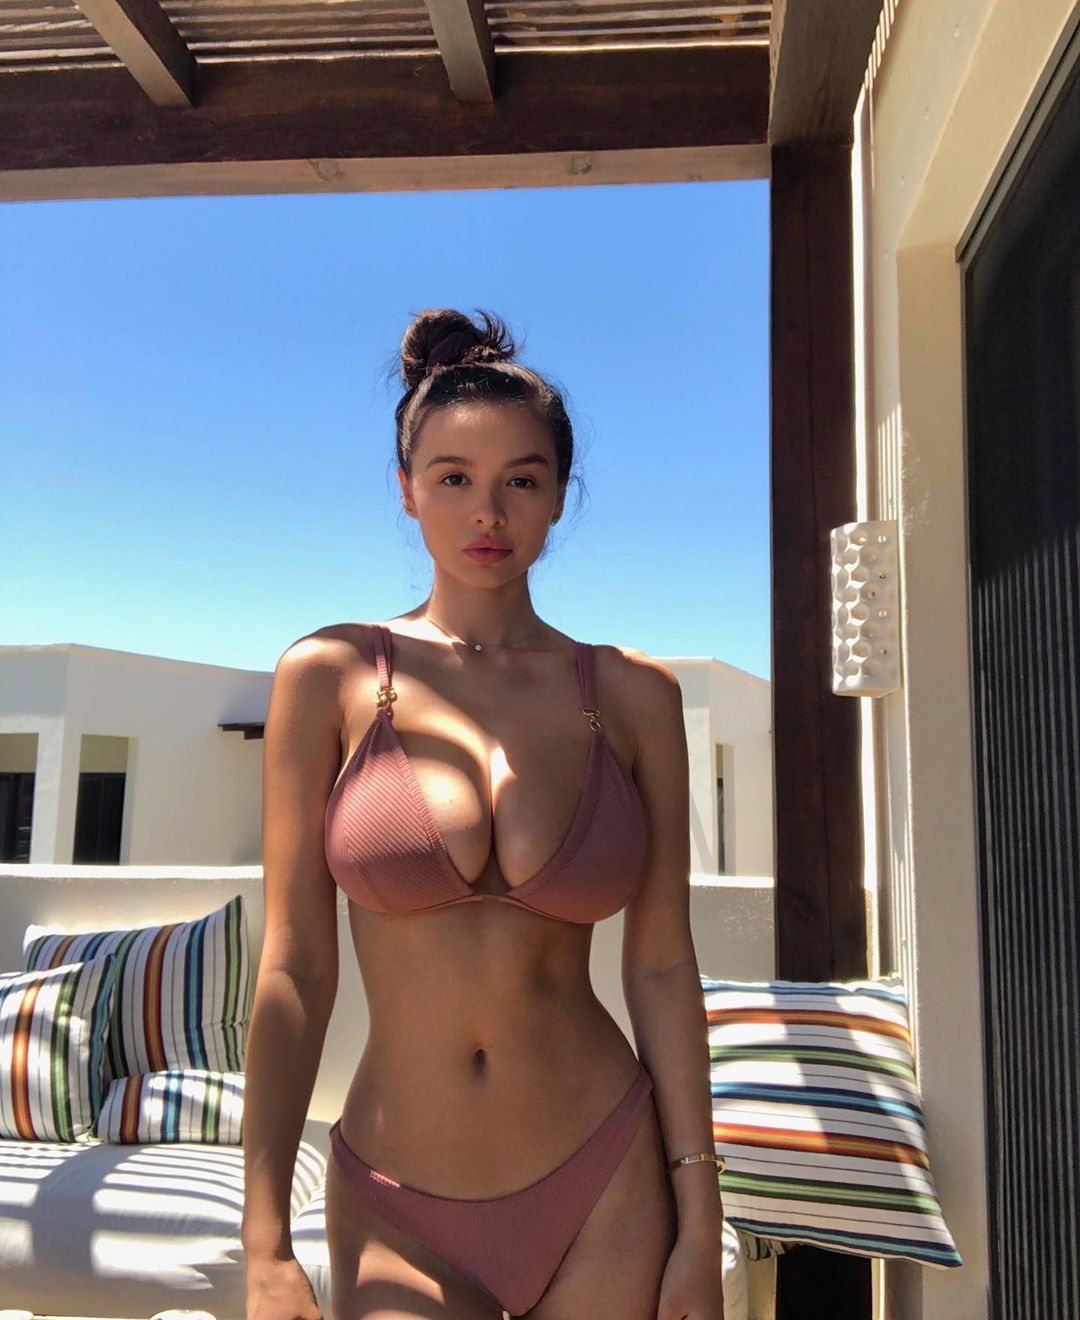 Sophie mudd is really cute and busty